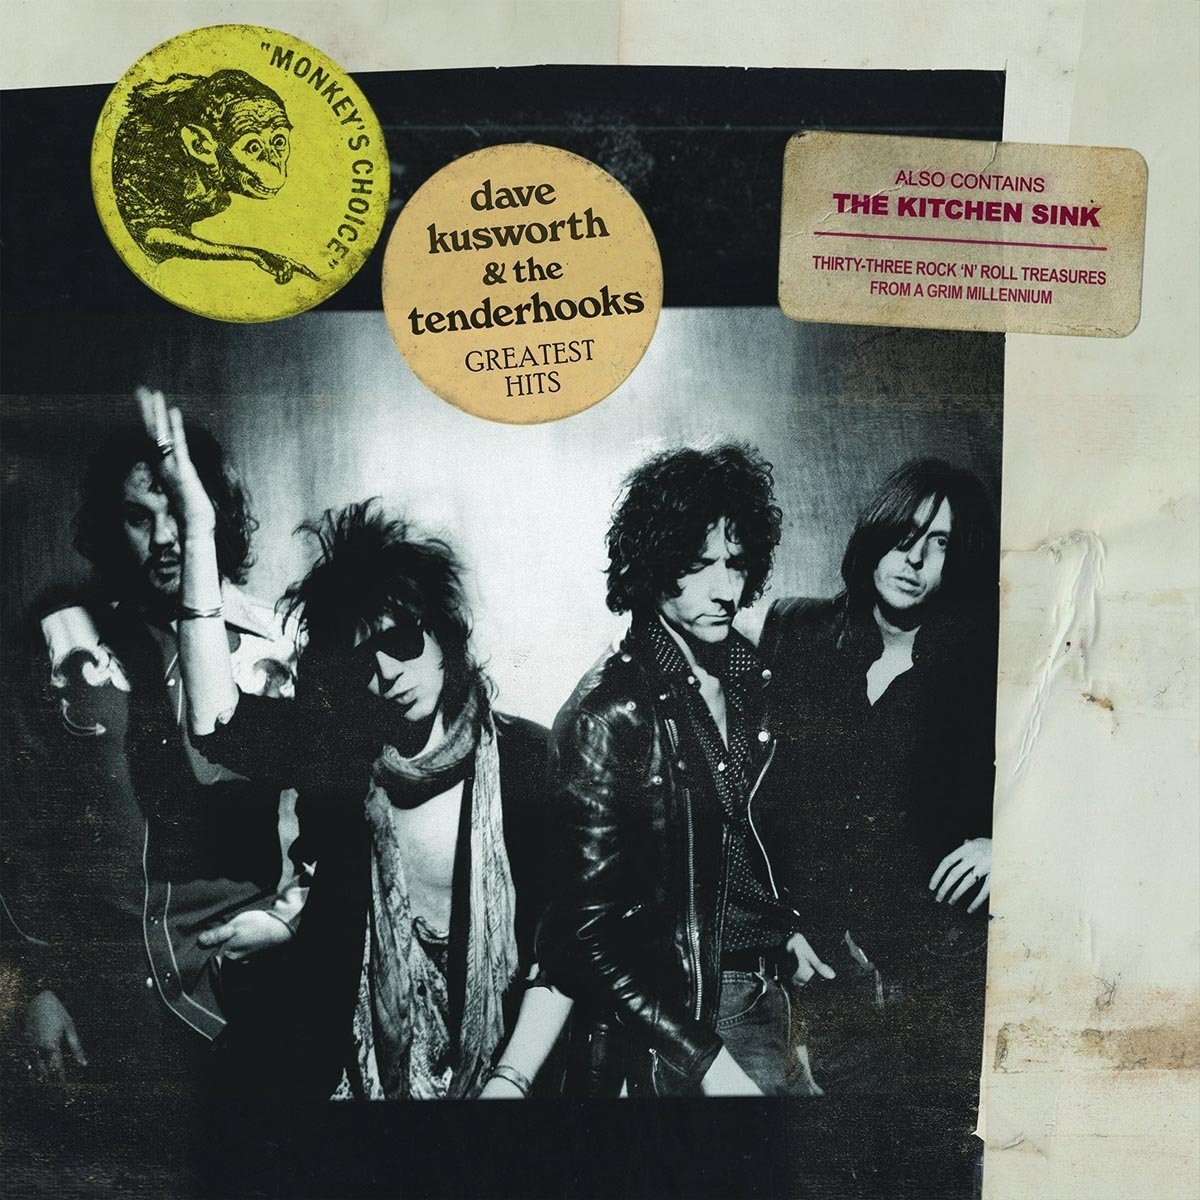 DAVE & THE TENDERHOOKS KUSWORTH - Monkeys Choice (2PC)